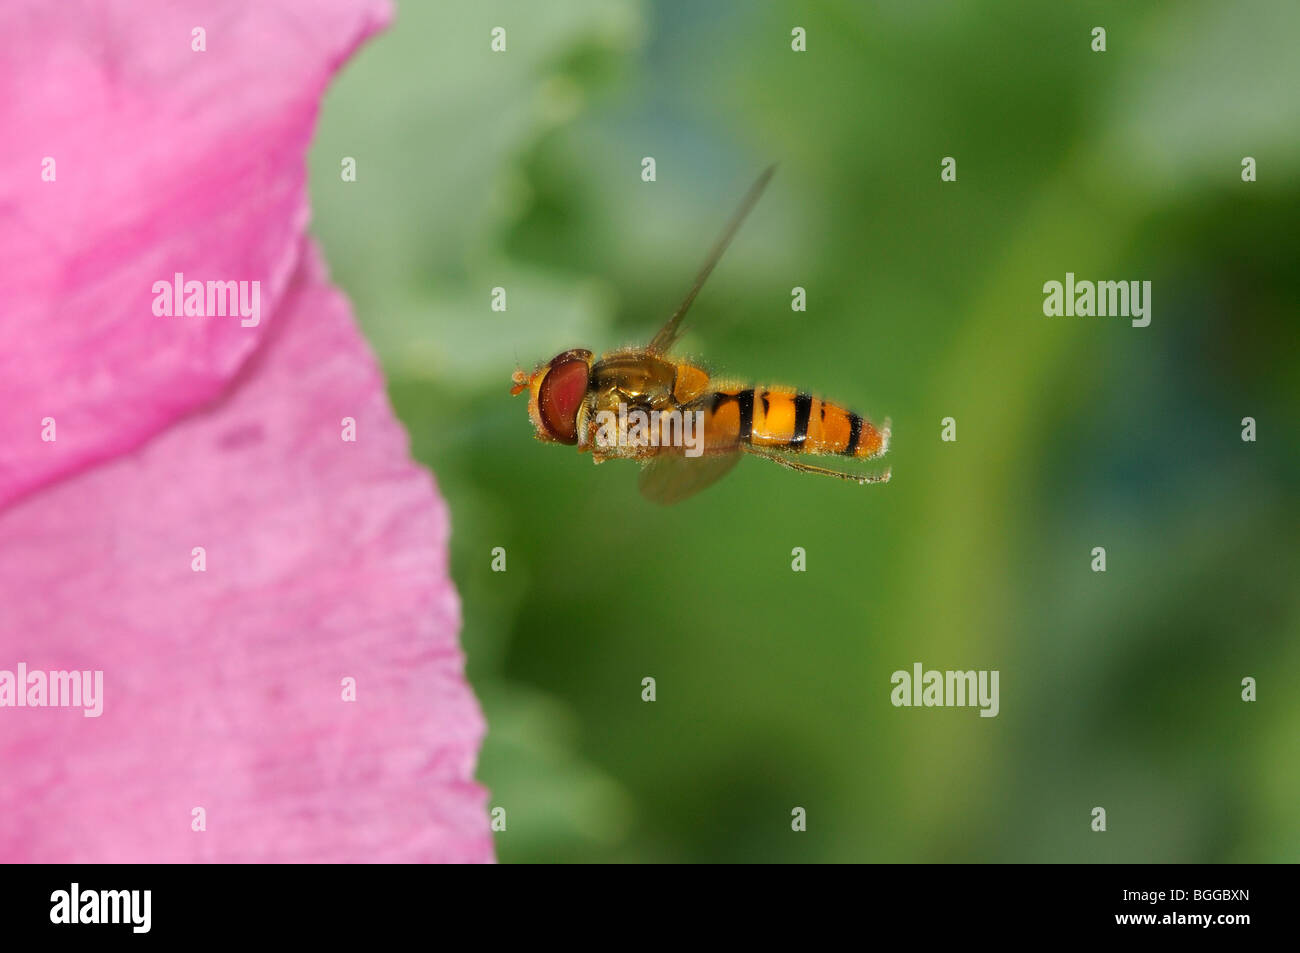 Hoverfly (Xanthogramma pedissequum) in flight, approaching poppy flower, Oxfordshire, UK. - Stock Image